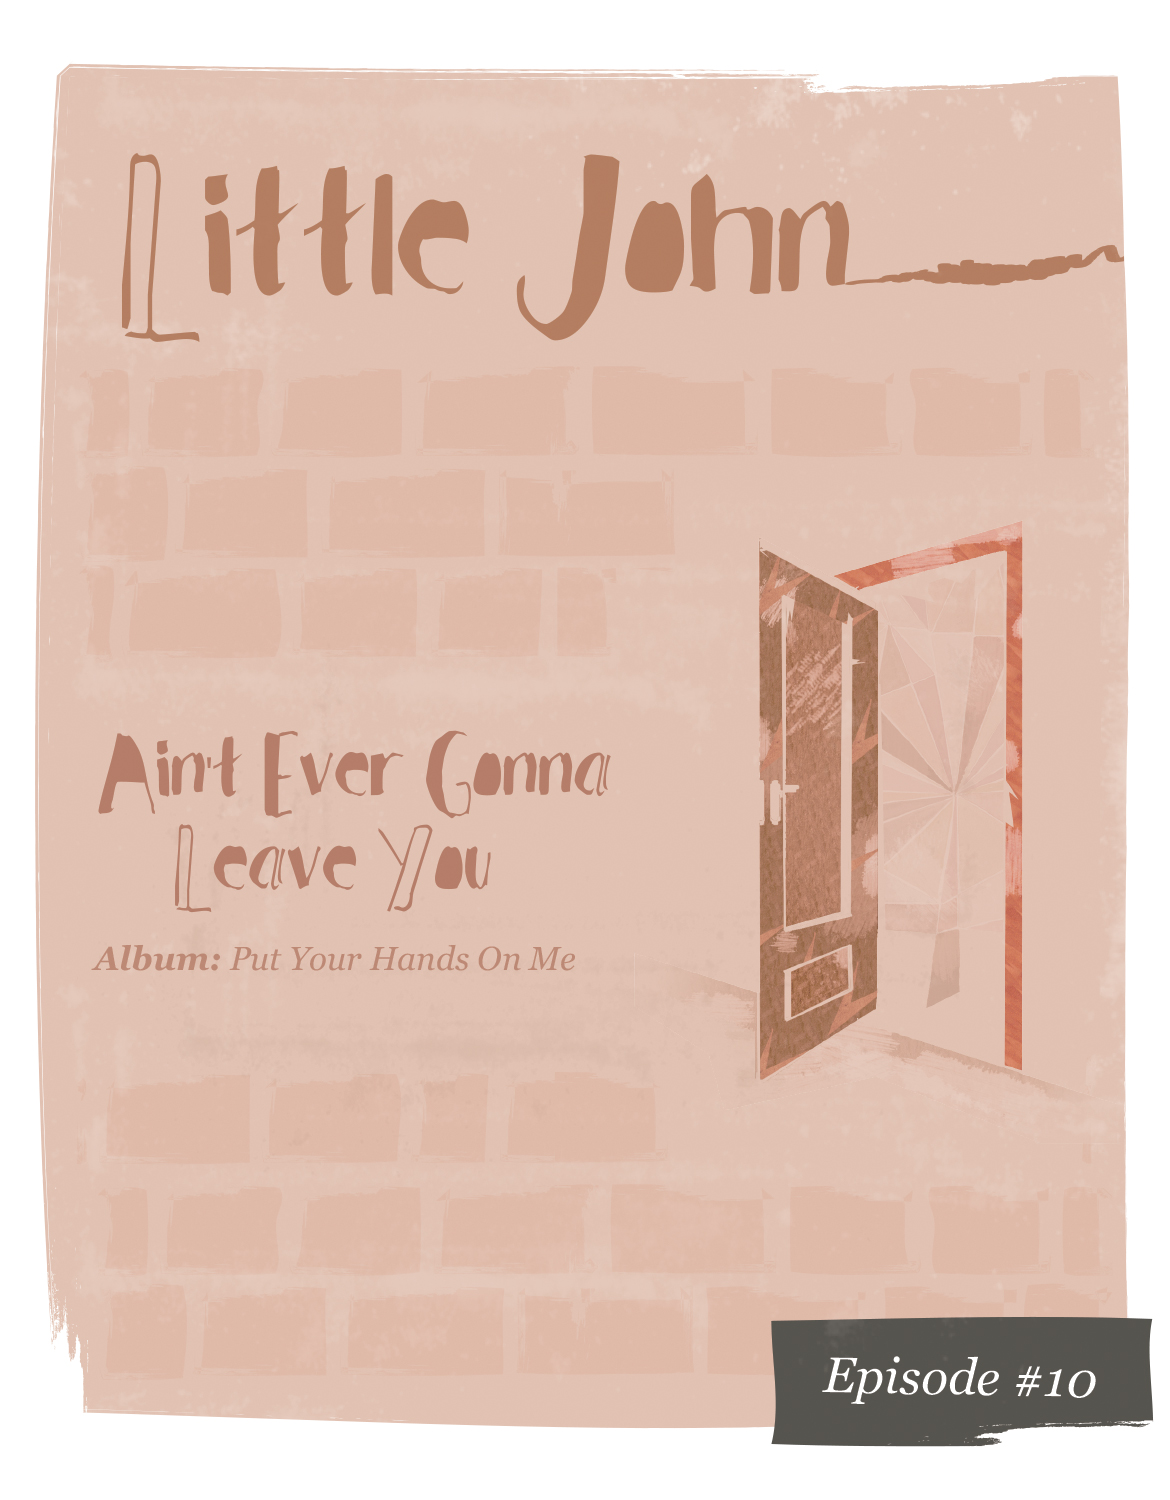 littlejohn_postcard